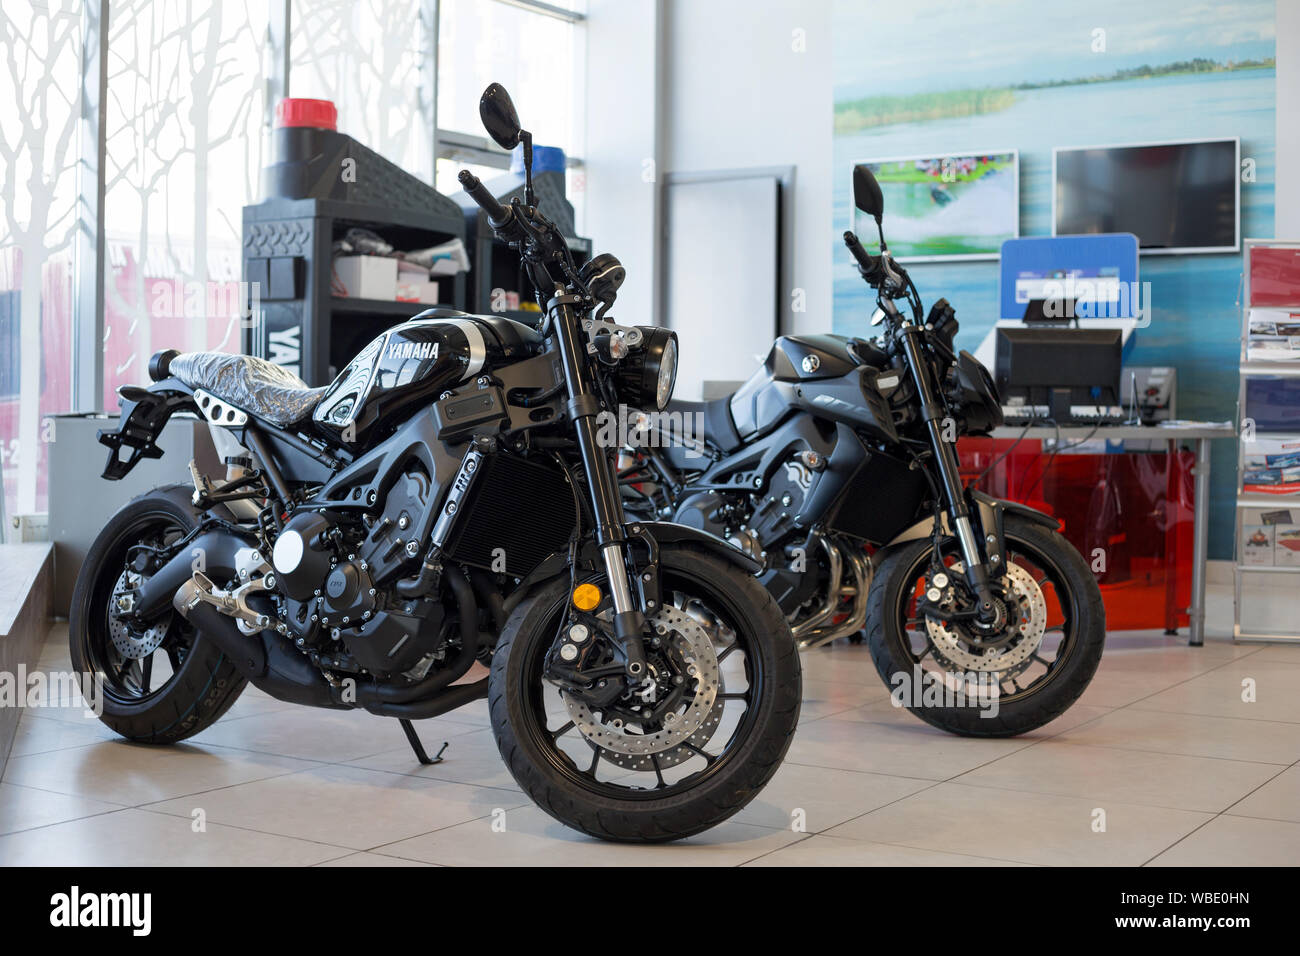 Russia, Izhevsk - August 23, 2019: Yamaha motorcycle shop. New motorbikes and accessories in motorcycle store. Famous world brand. Stock Photo